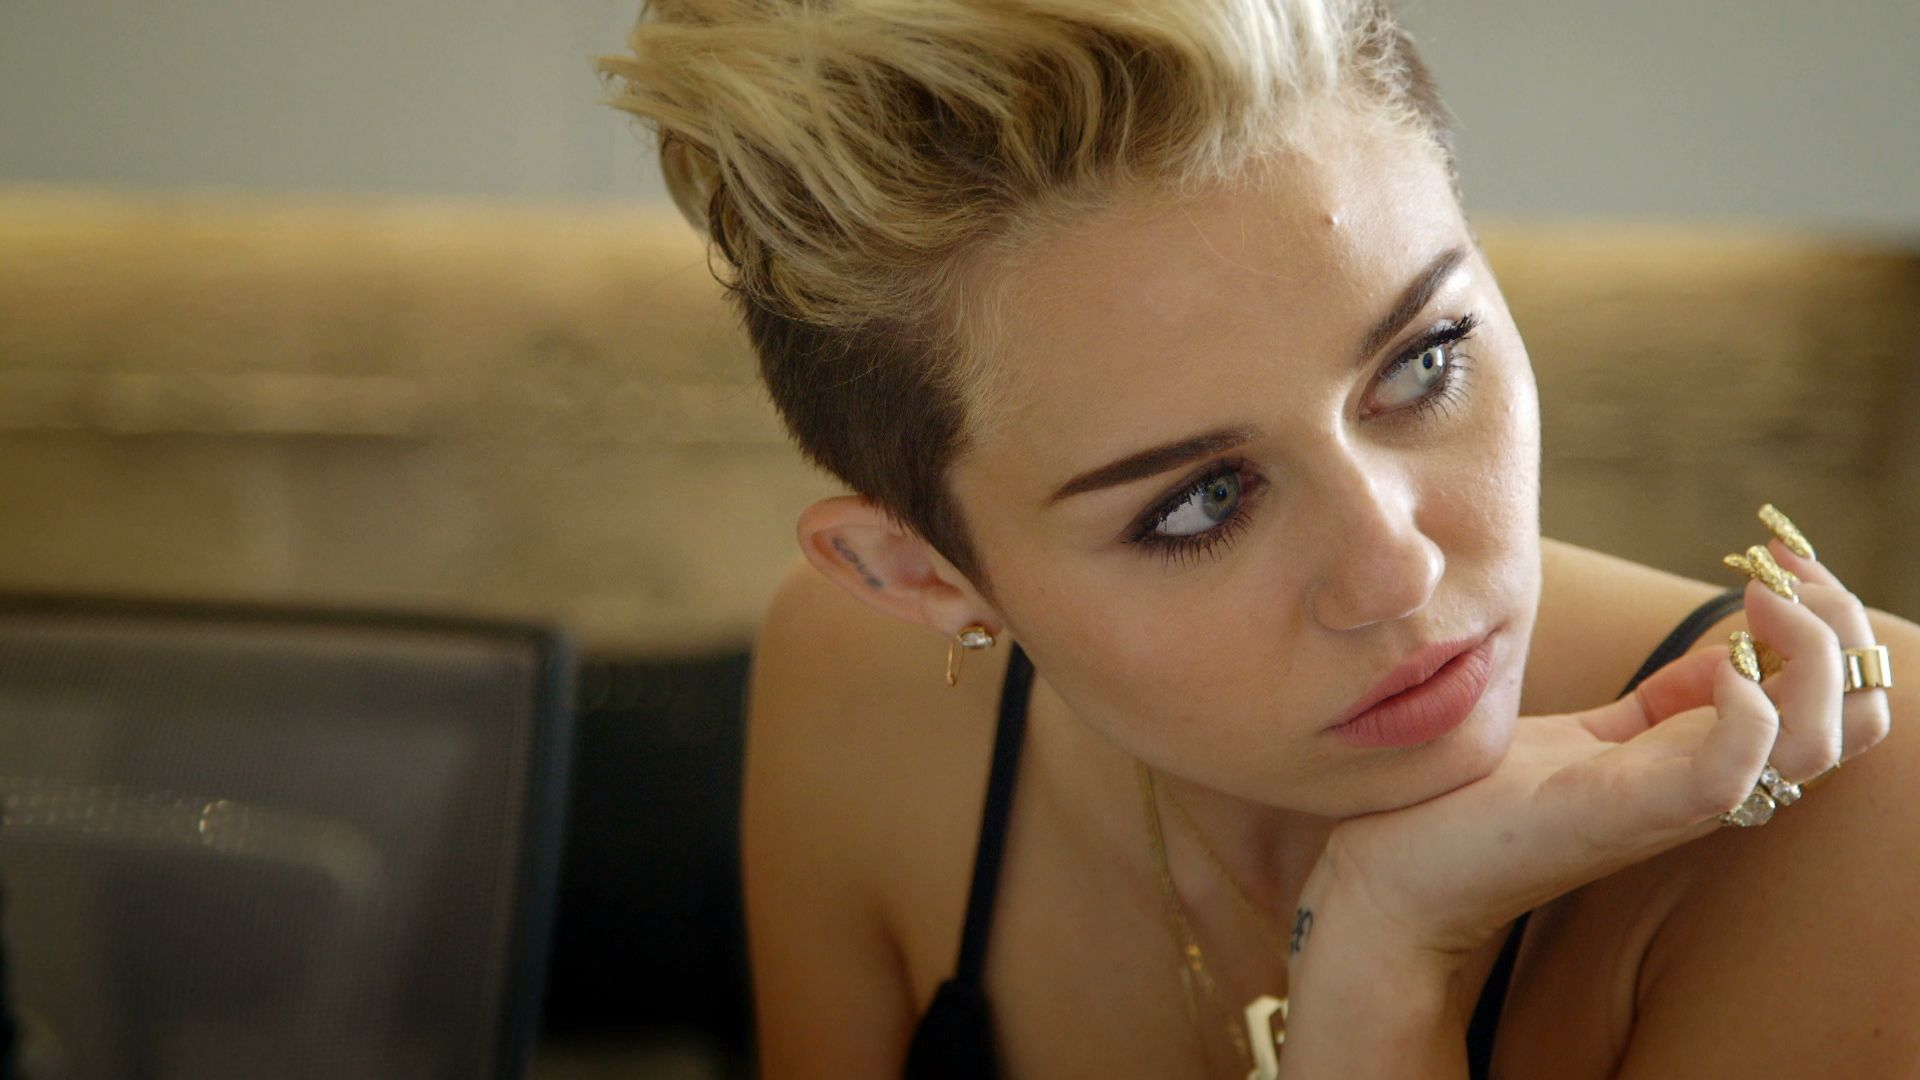 'Miley: The Movement' Trailer